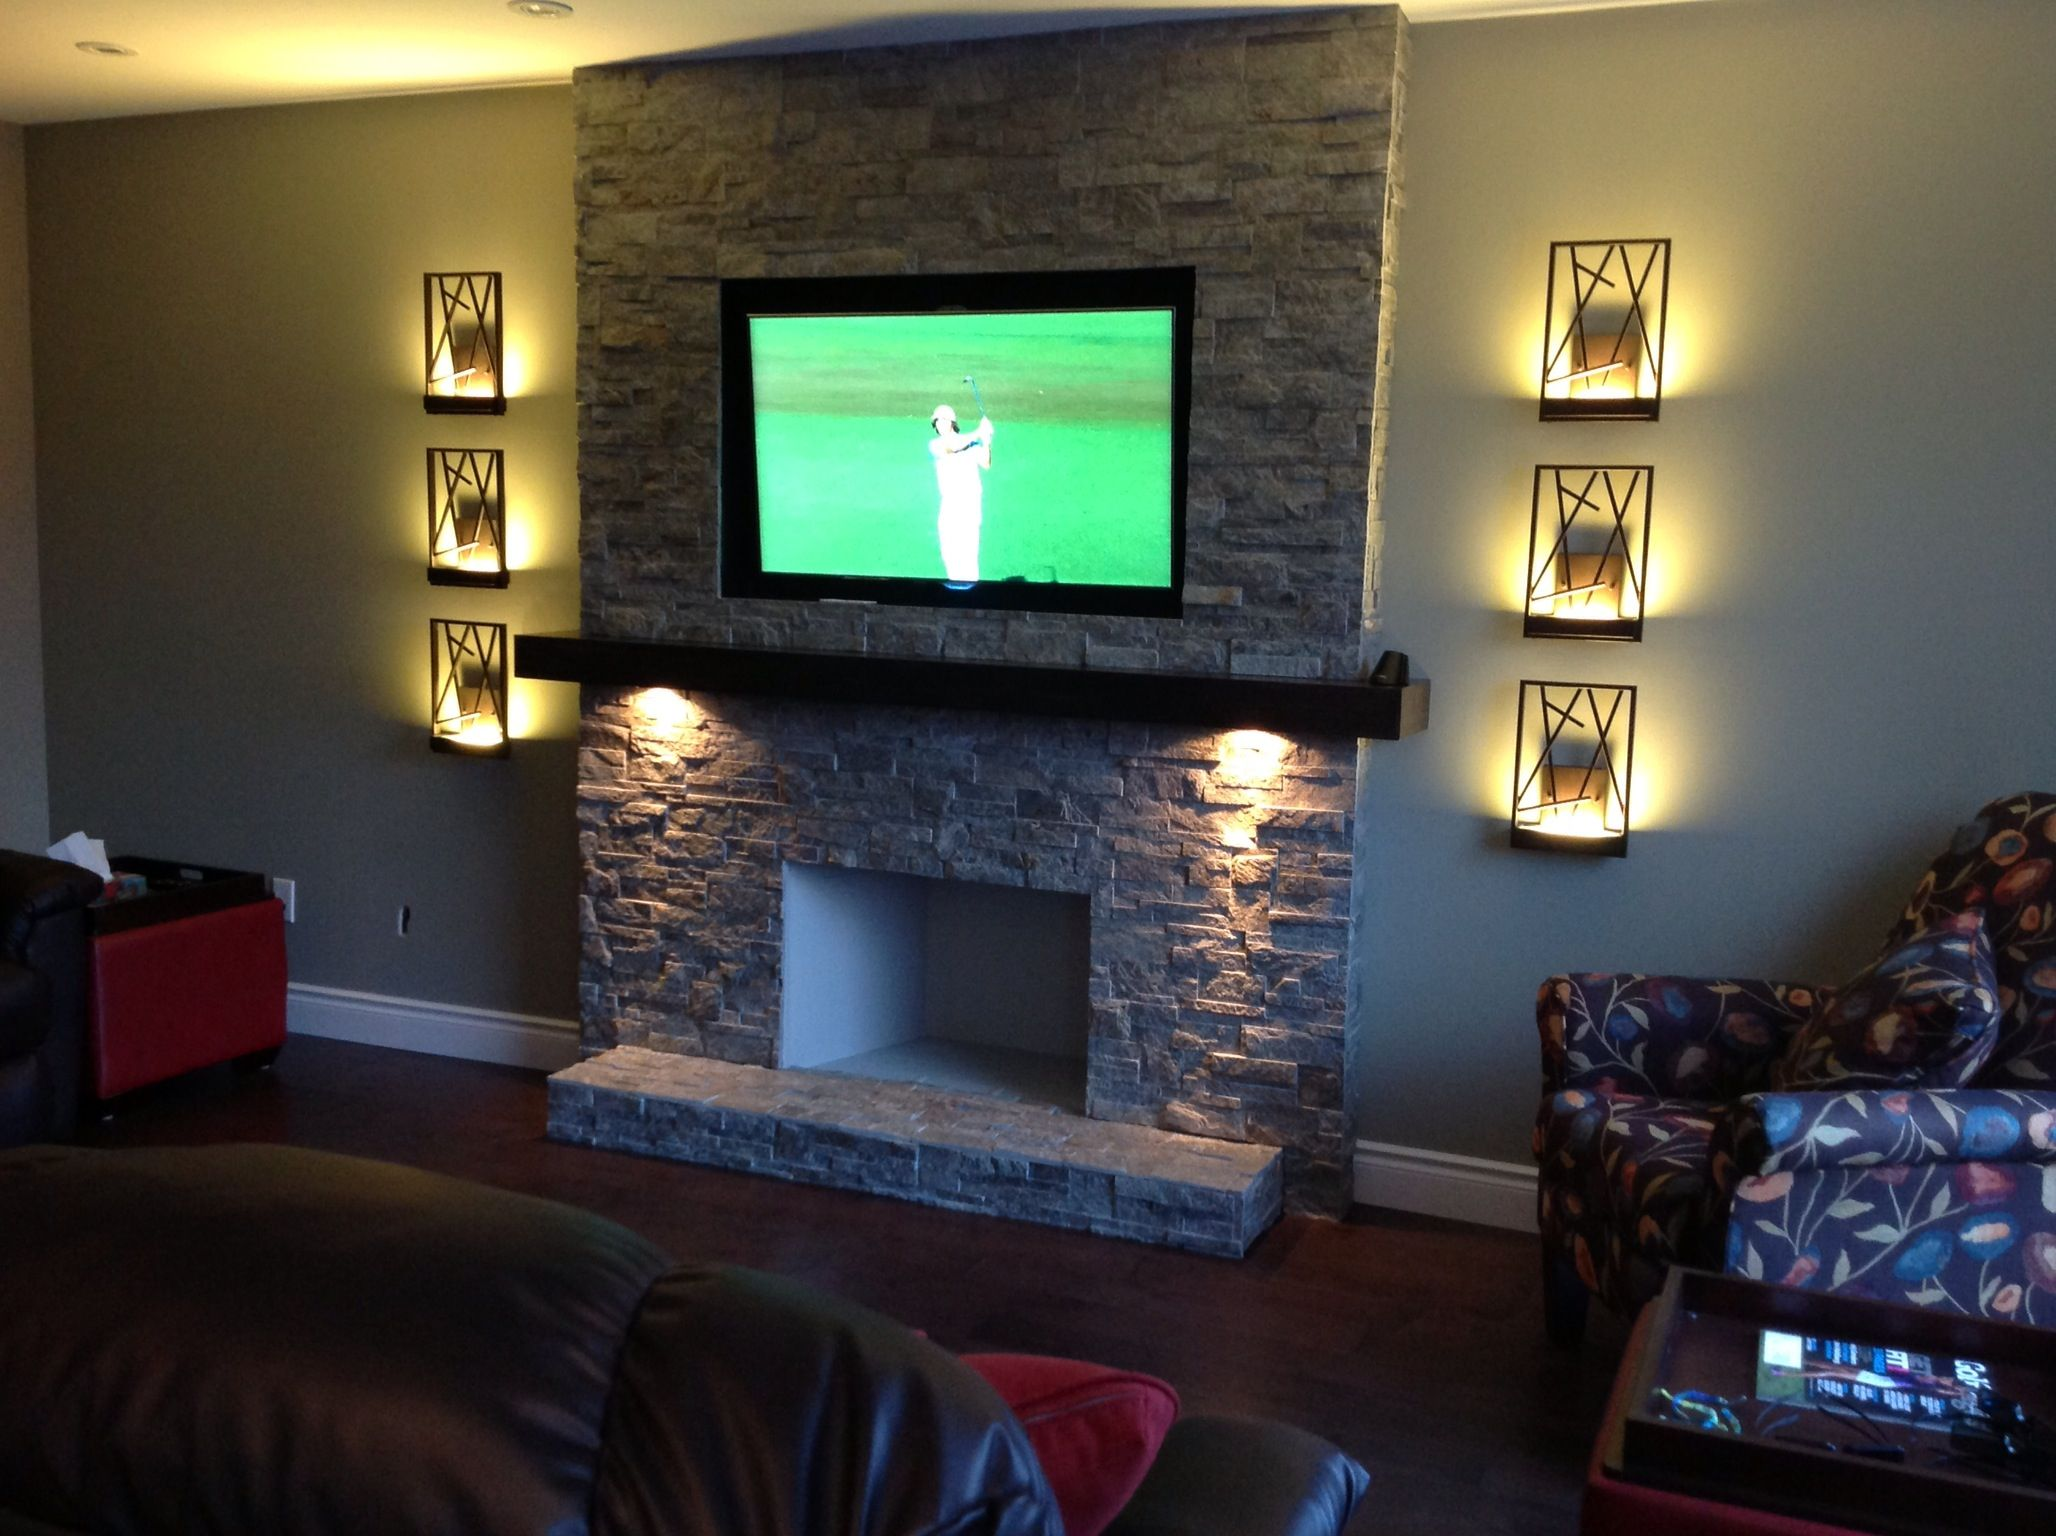 Tv Above Fireplace Recessed And Painted Black Behind Tv To Create A Frame House Fireplace